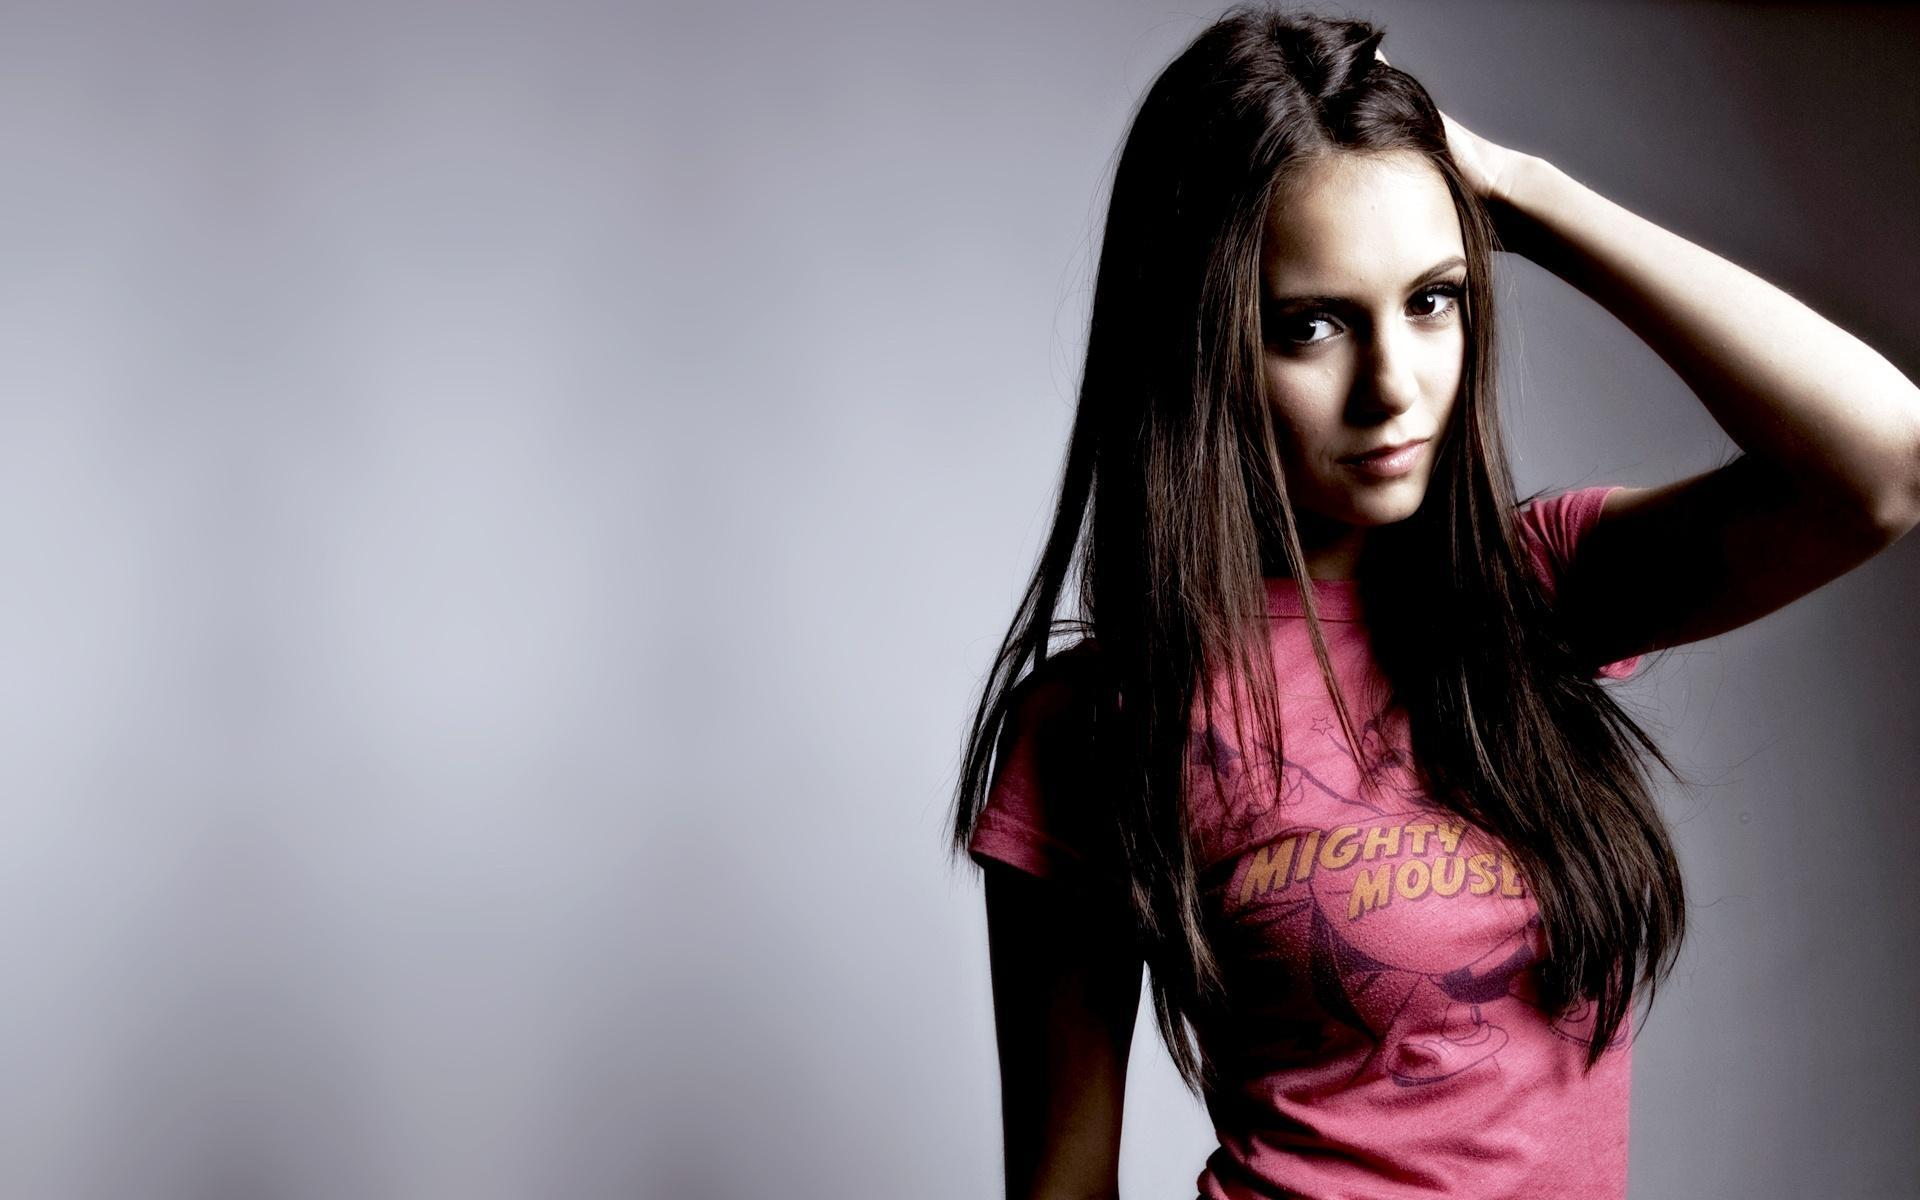 50307 download wallpaper People, Girls screensavers and pictures for free